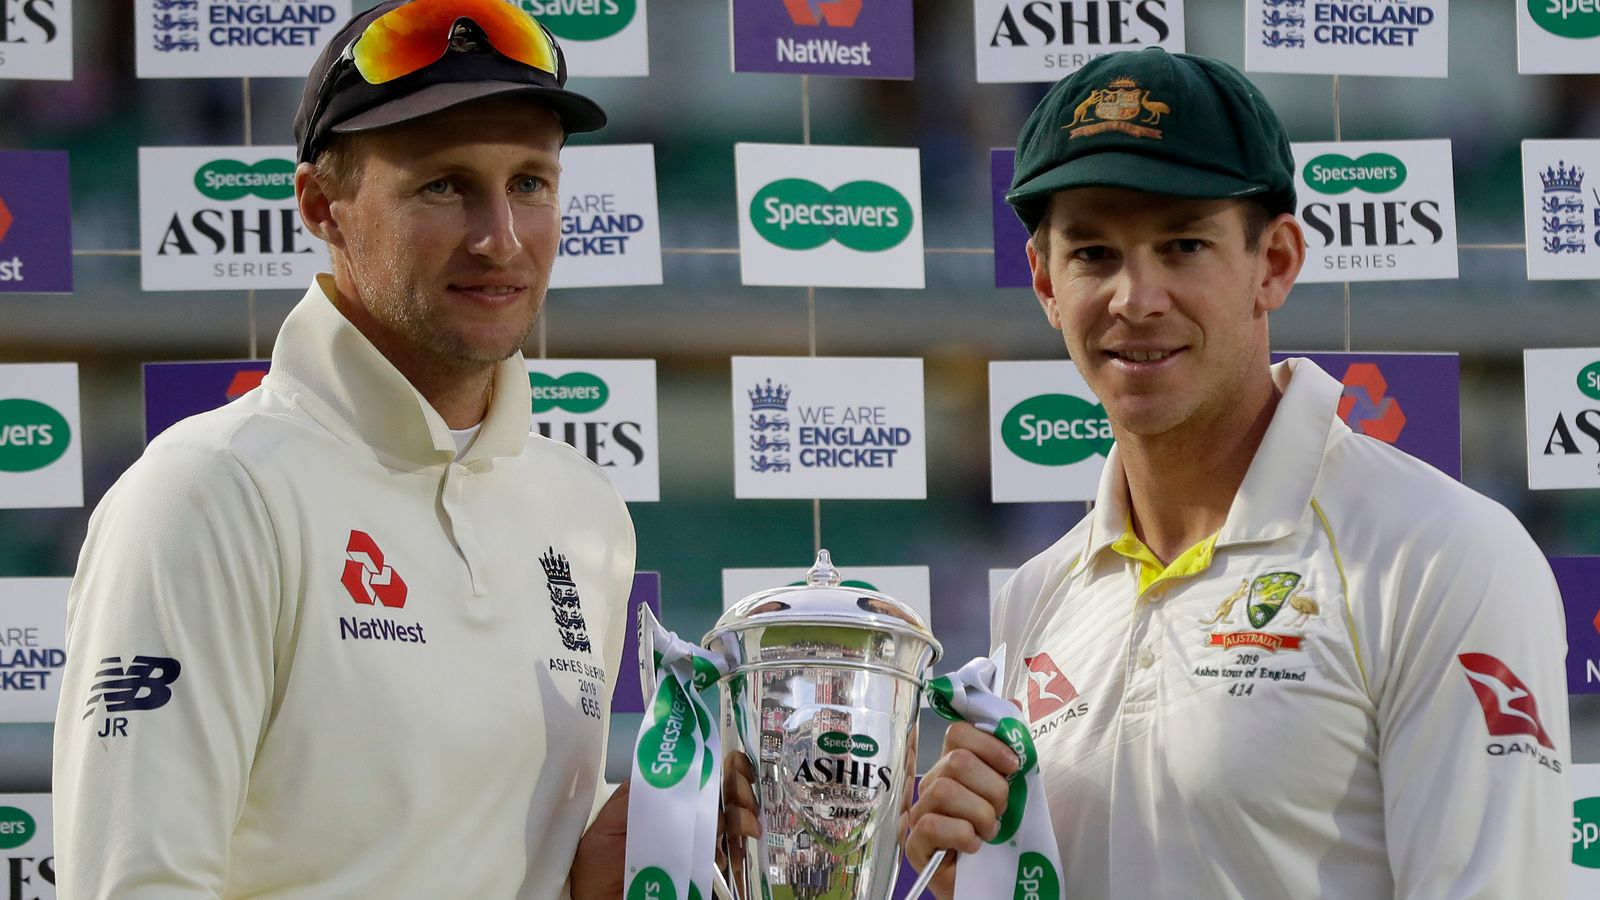 Tim Paine: Australia captain says Ashes will go ahead 'whether Joe Root is here or not'